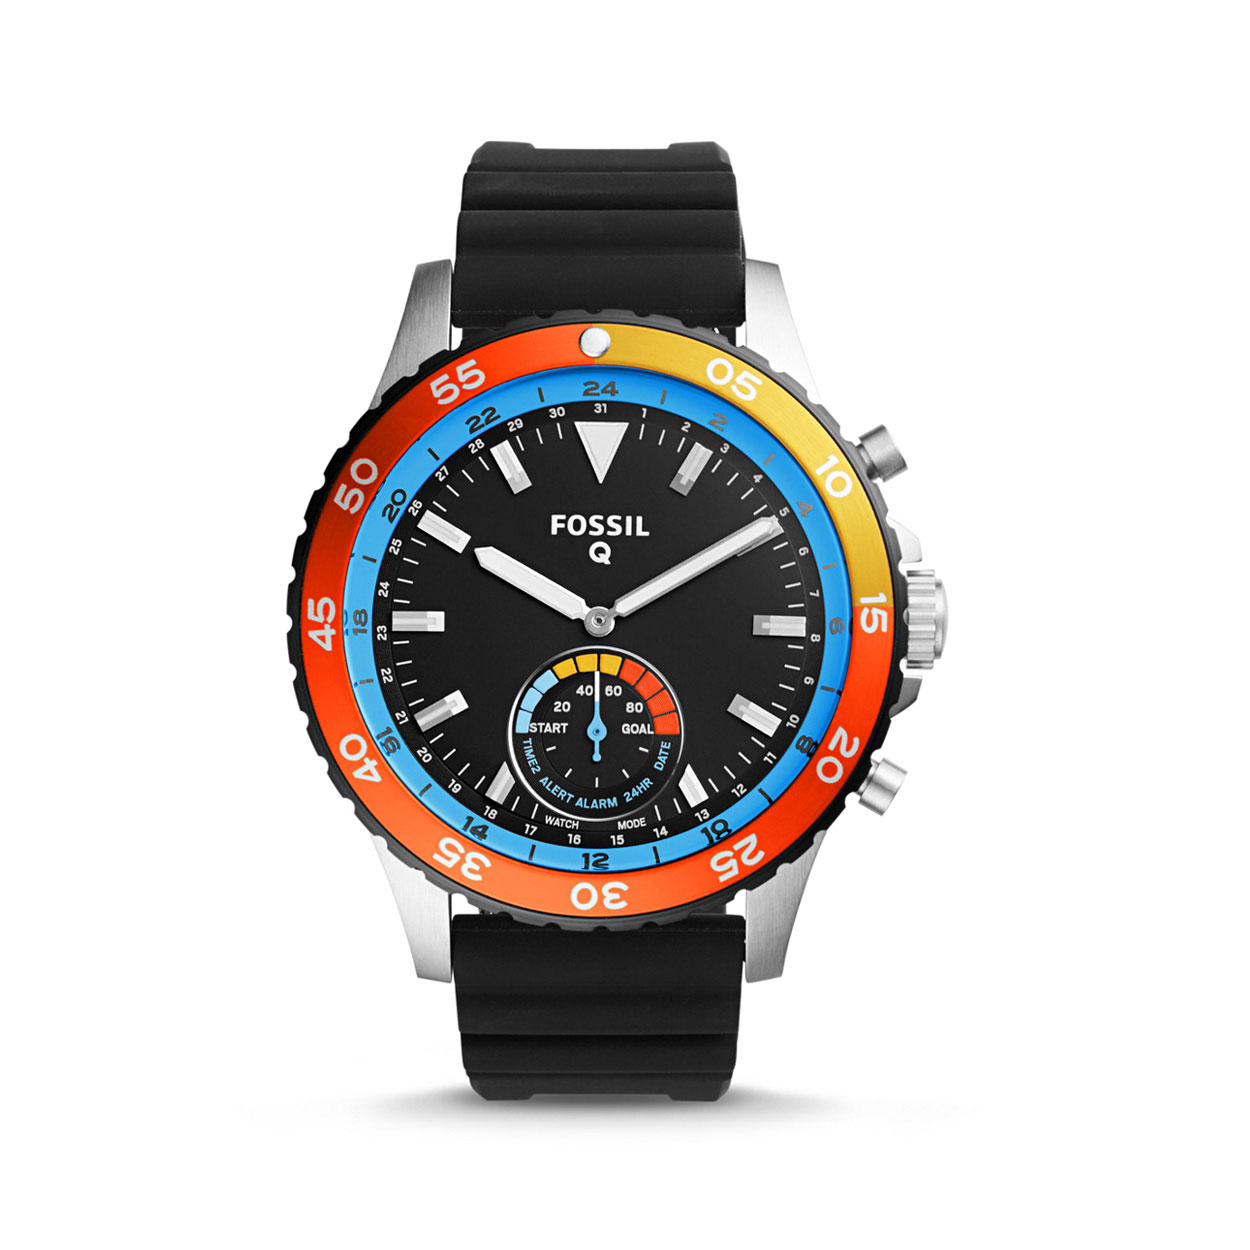 HYBRID SMARTWATCH FOSSIL Q CREWMASTER